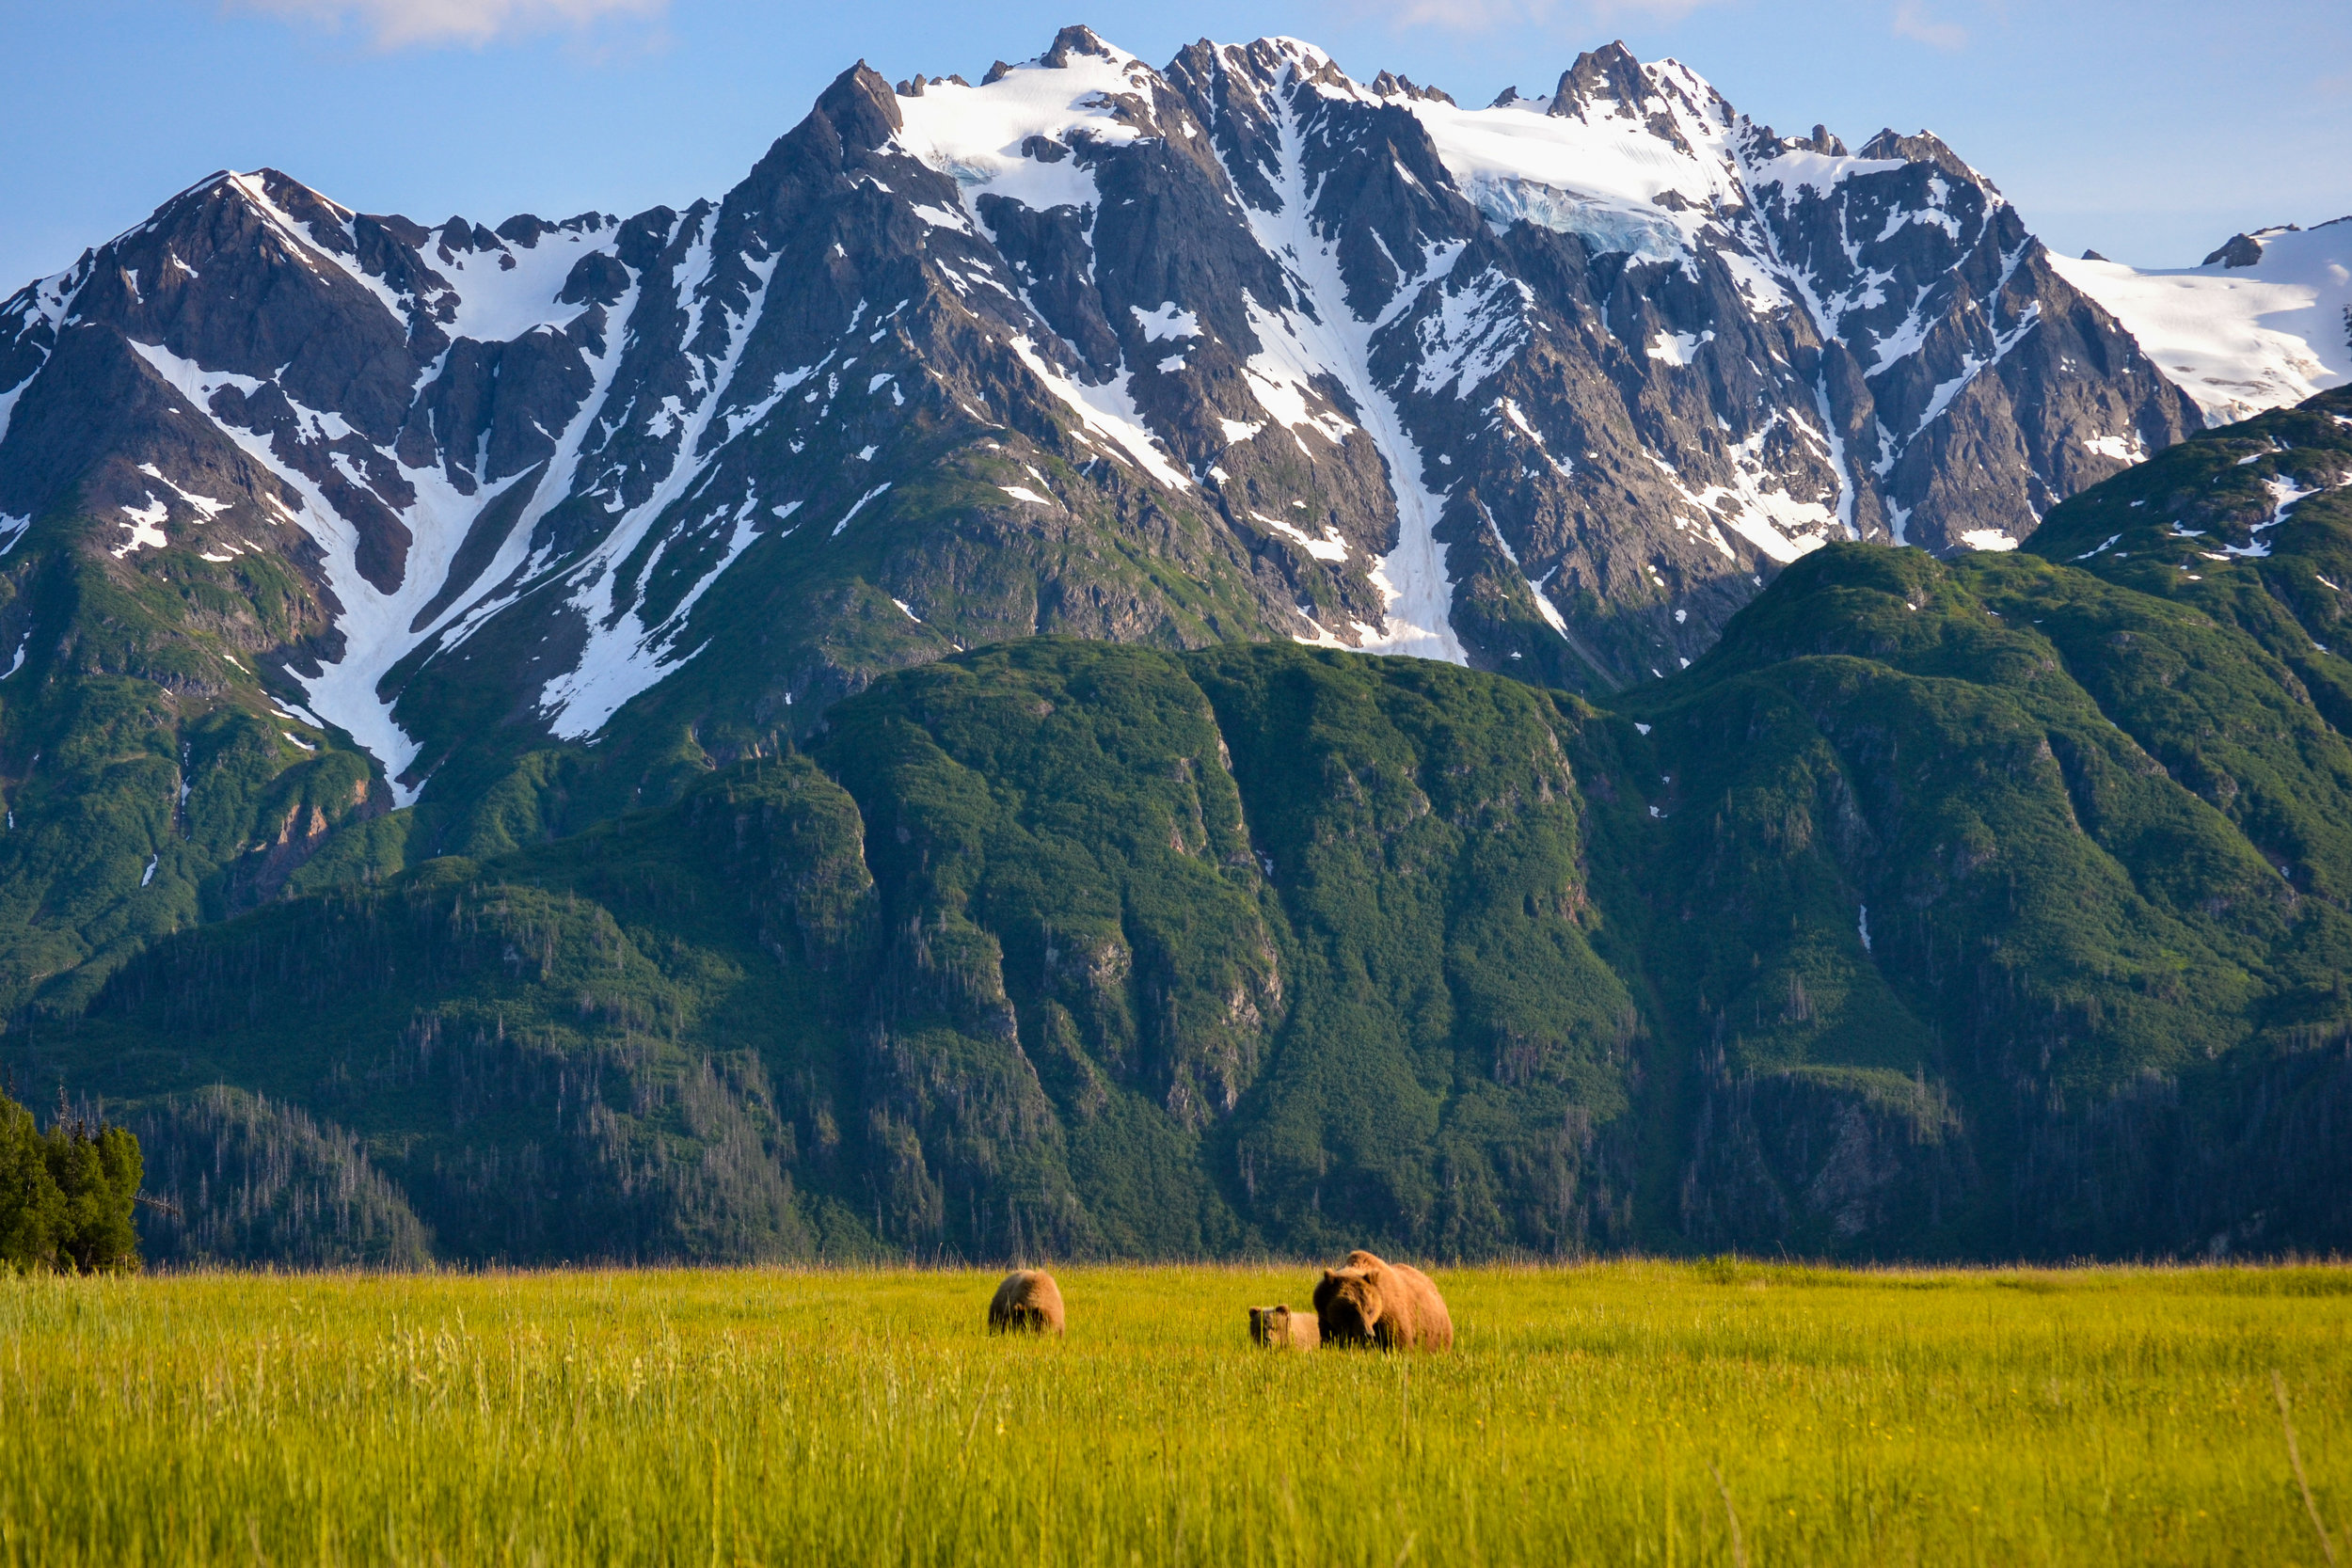 Alaska-bears-grizzly-Photo-by-Aaron-Minks-DSC_1181.jpg